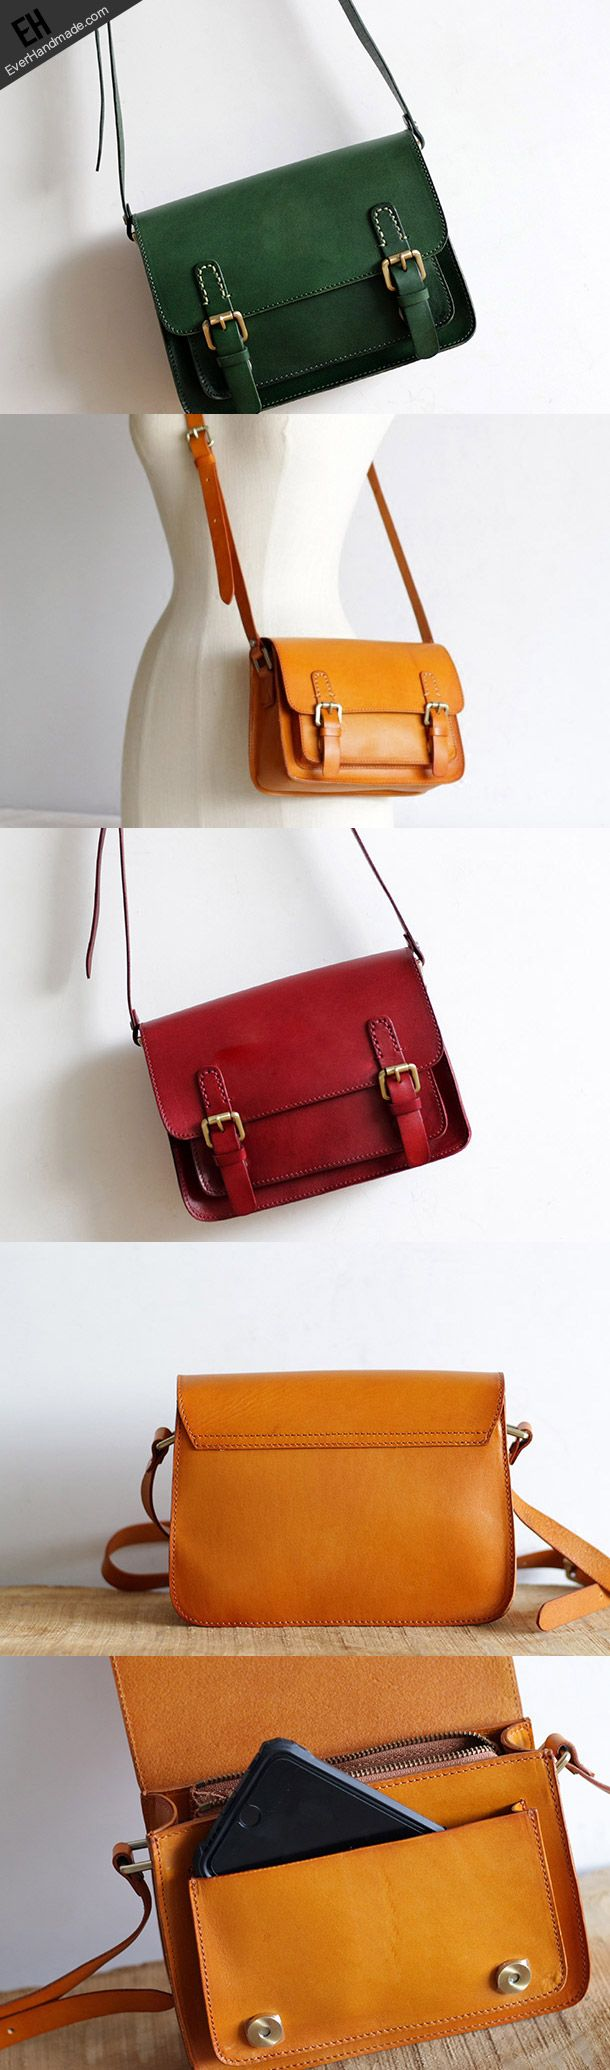 Handmade Leather satchel bag for women leather shoulder bag